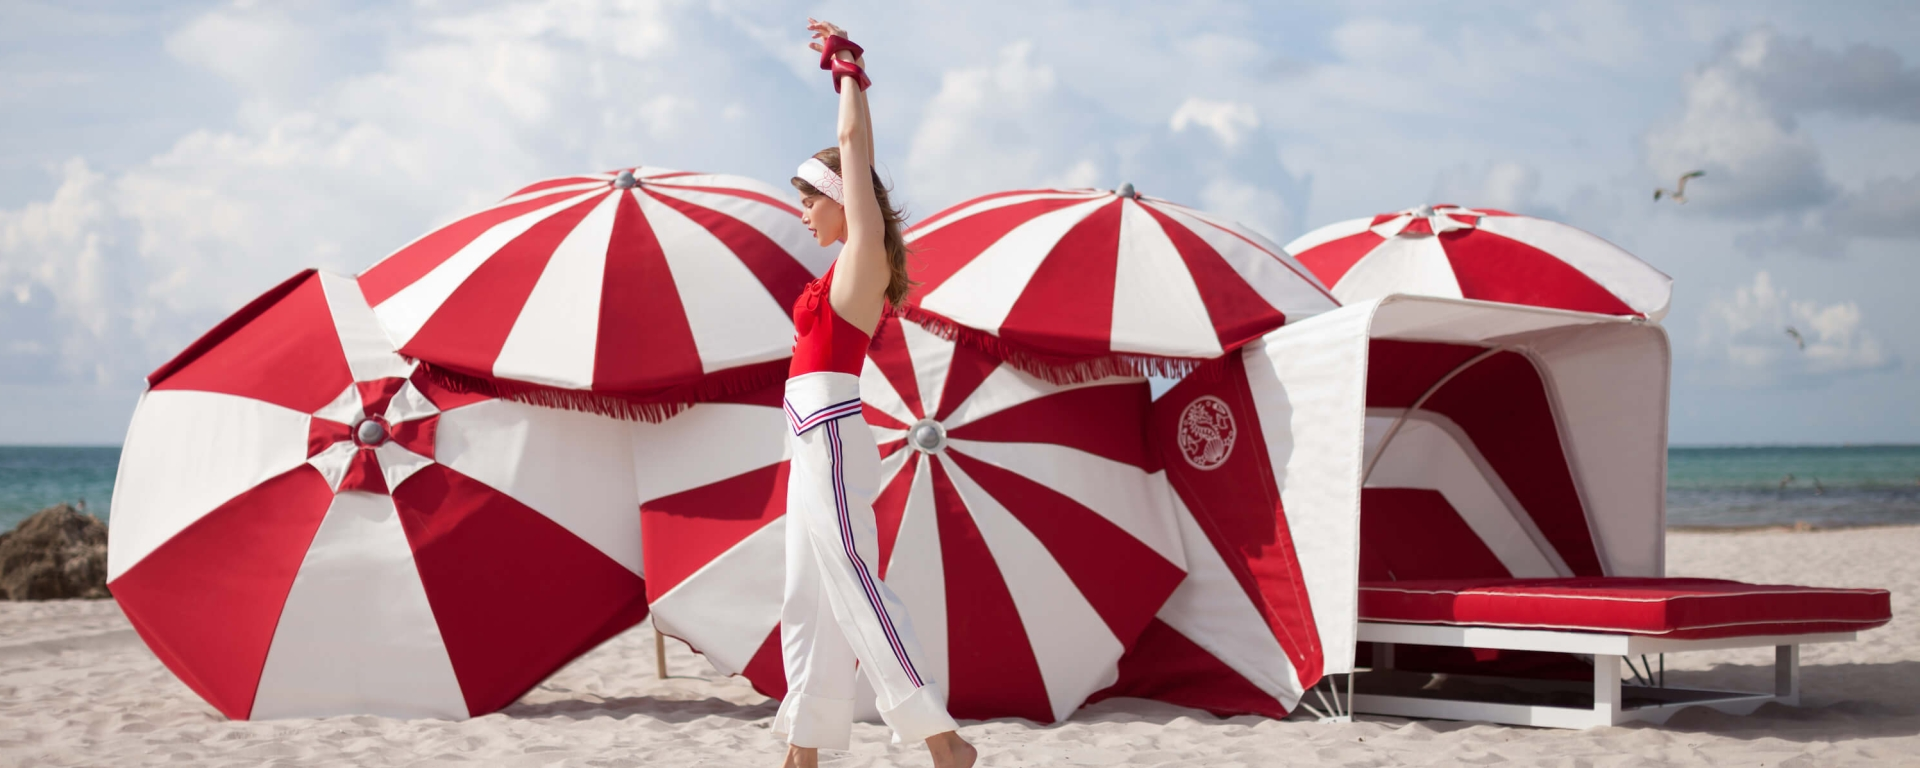 woman walking on the beach in front of red and white umbrellas